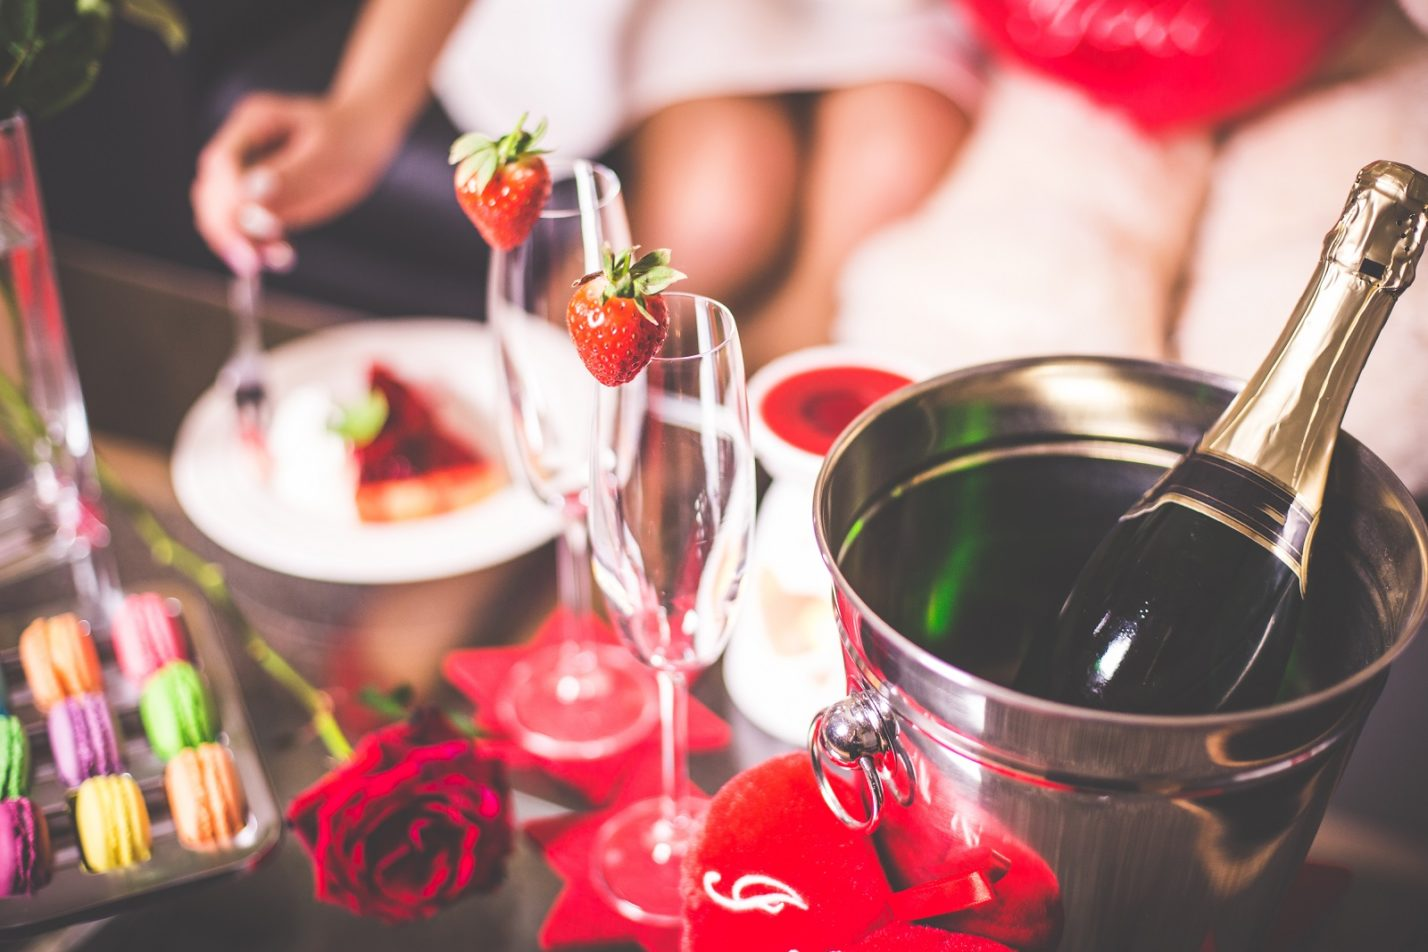 Two champagne flutes with strawberries on the rim, next to a bottle of champagne